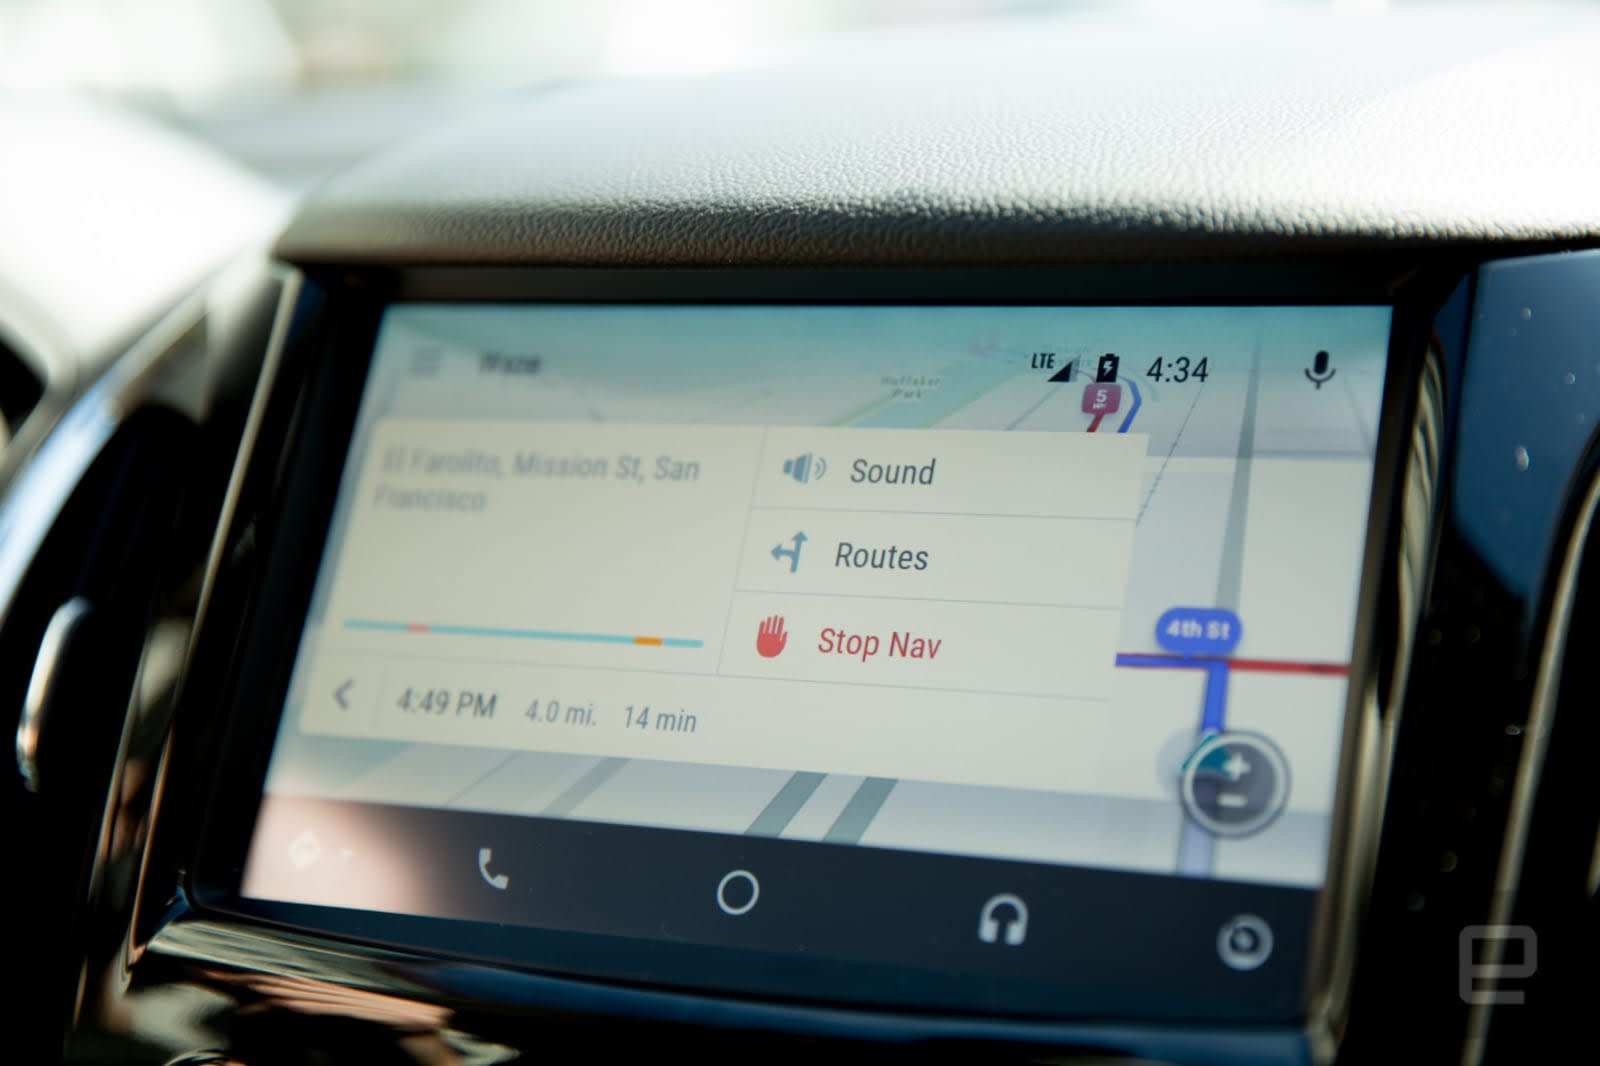 Waze now works with Android Auto's phone display